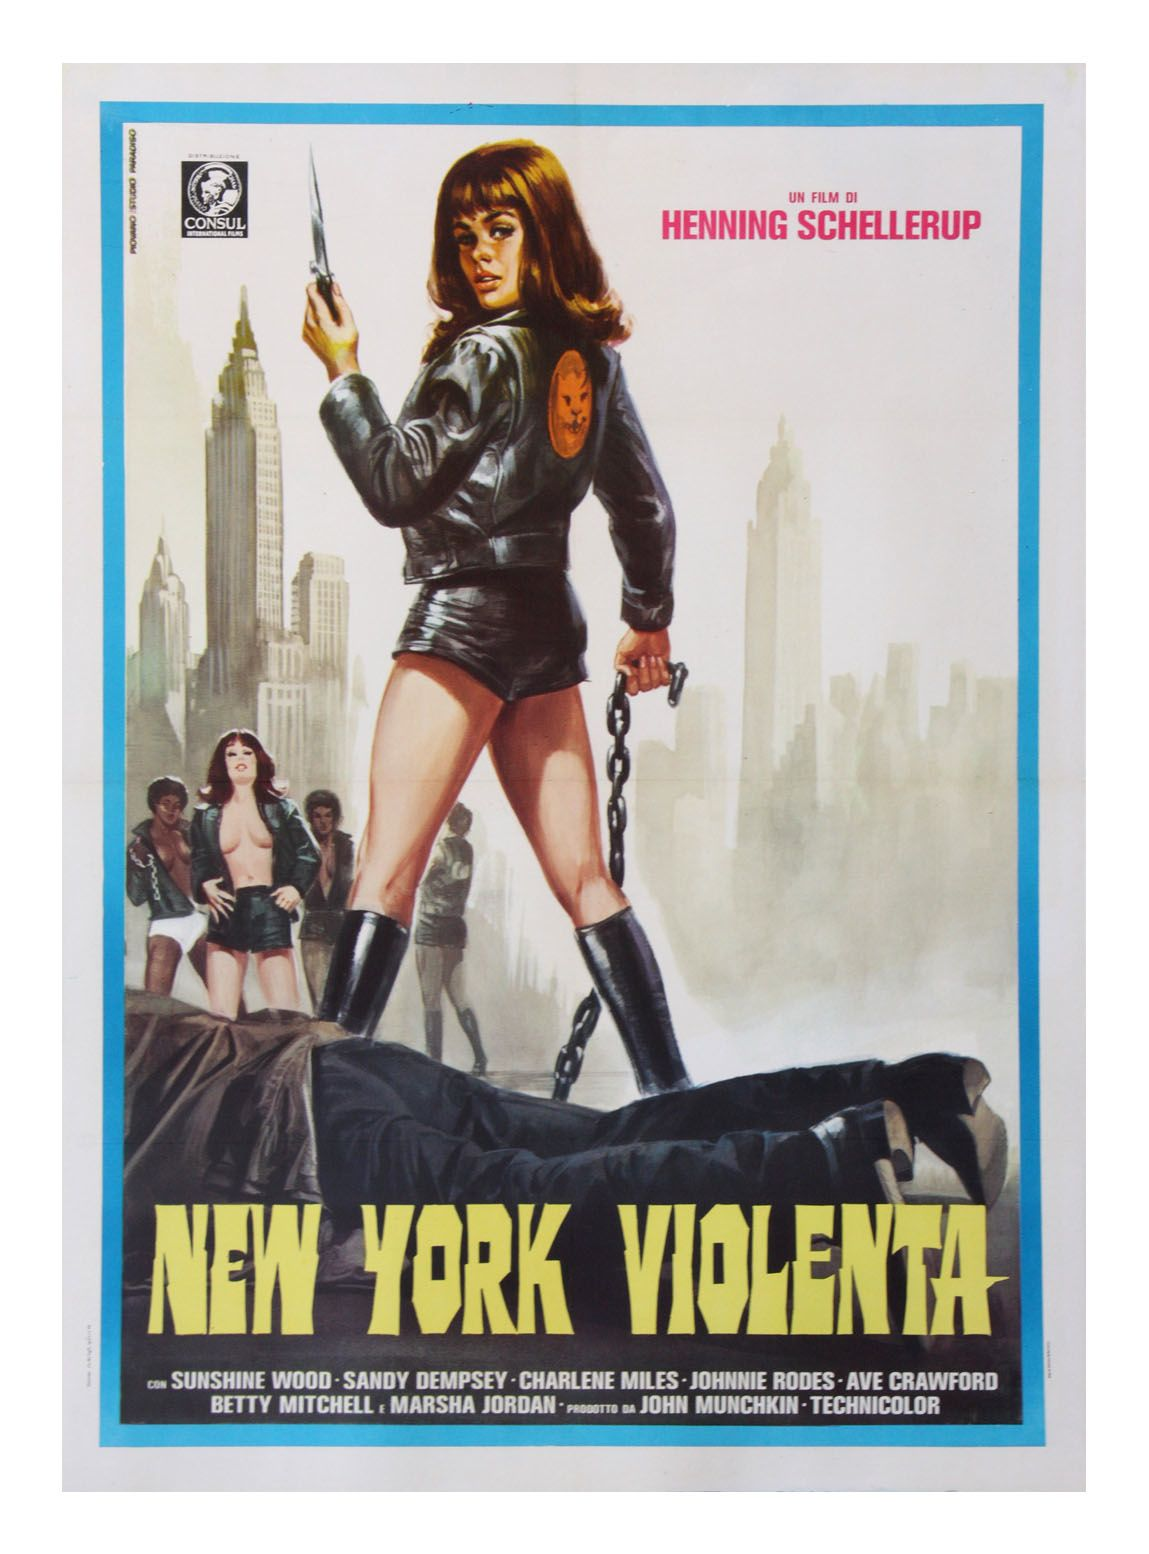 New York Violenta (US: The Black Alley Cats) #film #poster (1973)